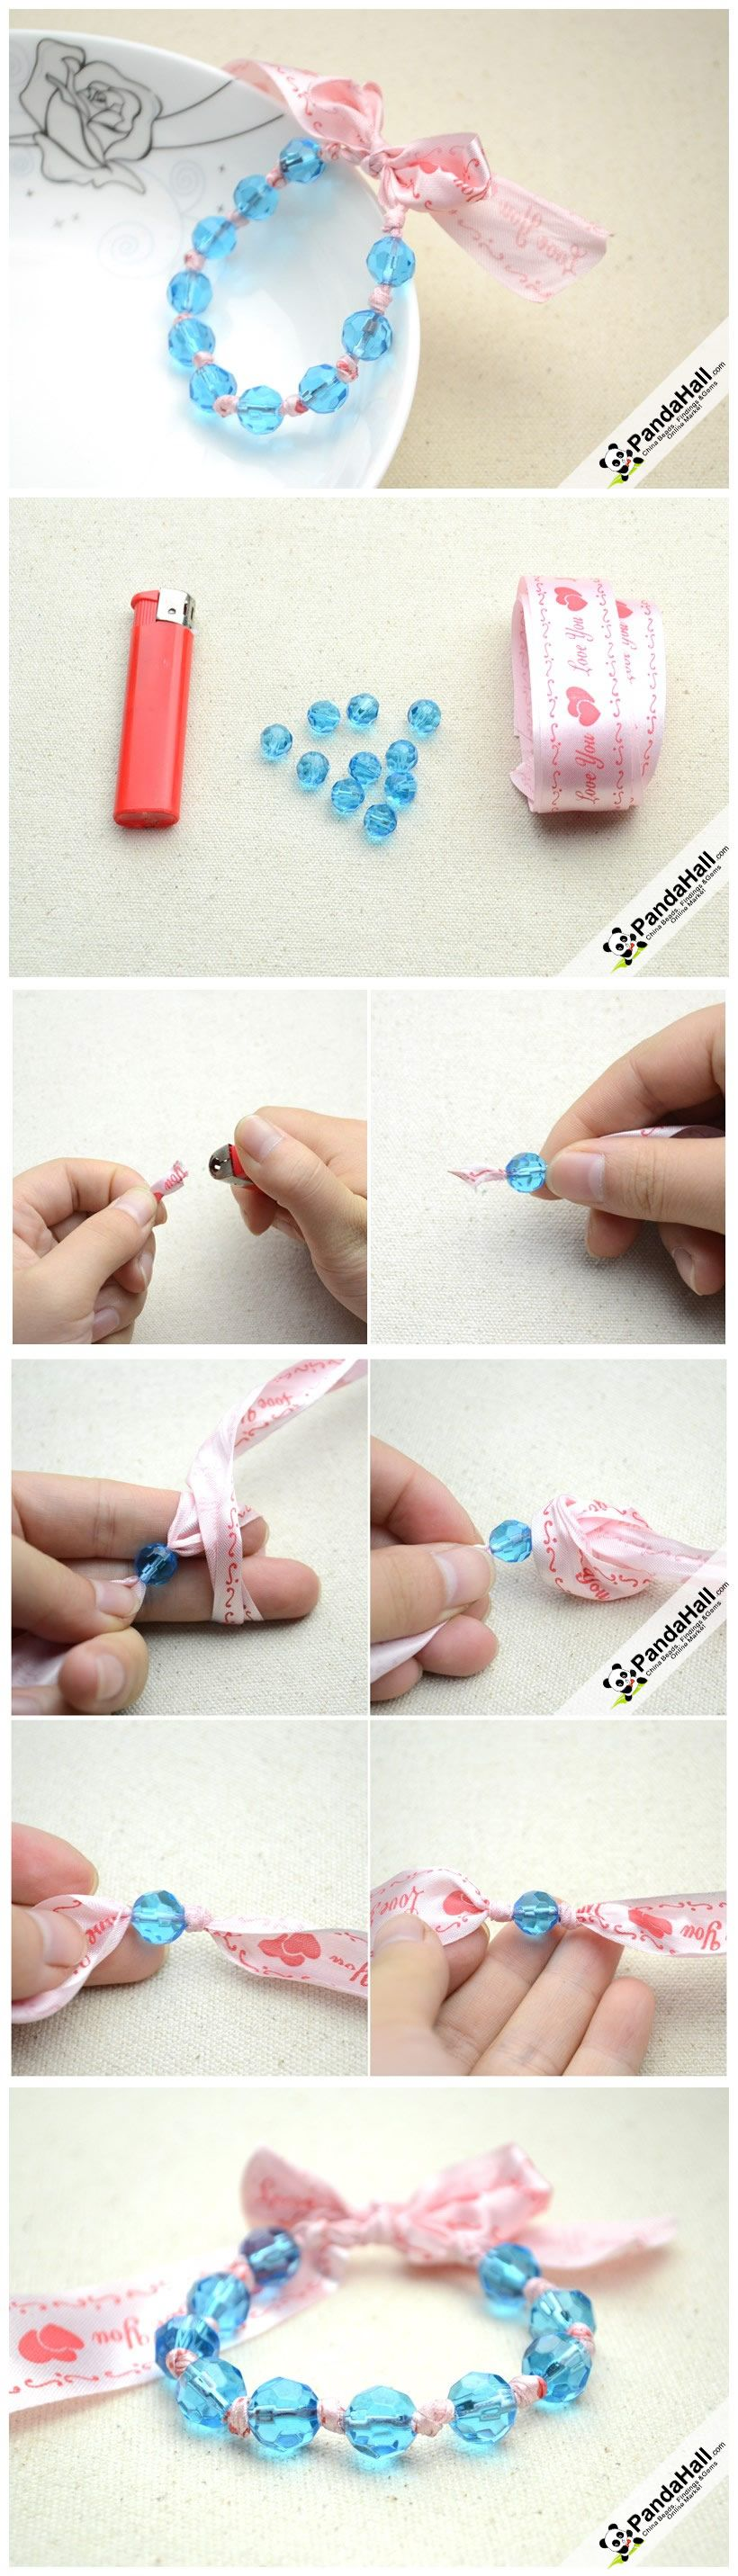 HandMade: bracelets with your own hands made of beads and ribbons